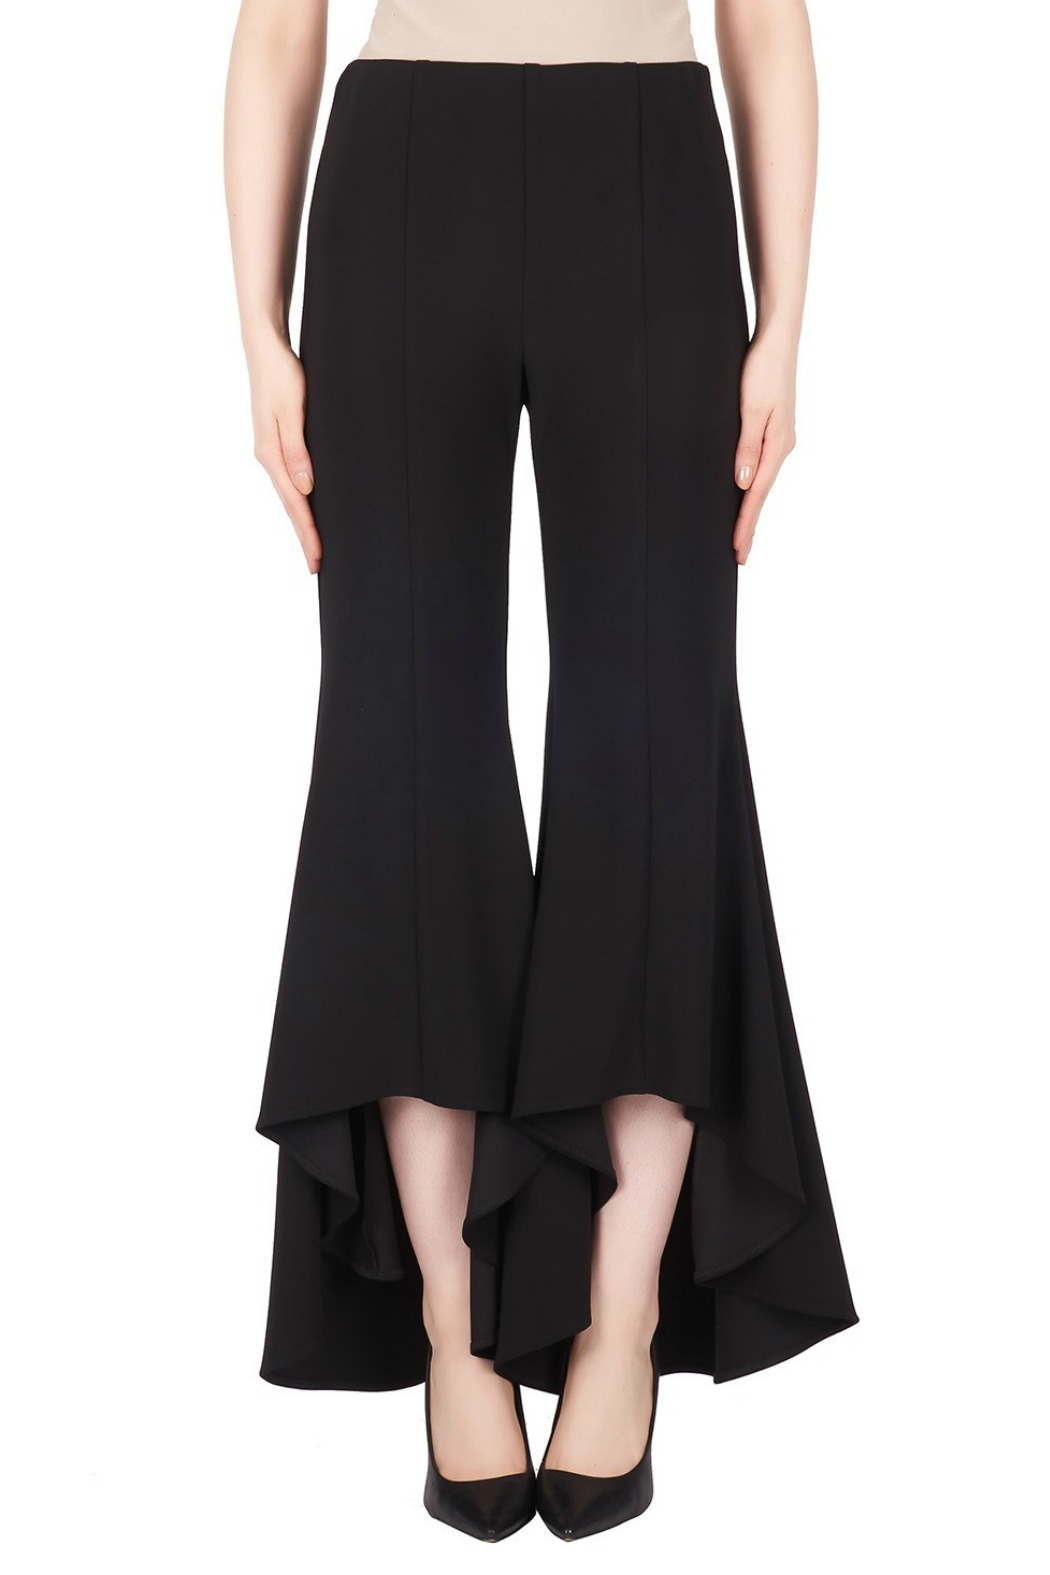 Joseph Ribkoff Flowy Pant - Front Cropped Image